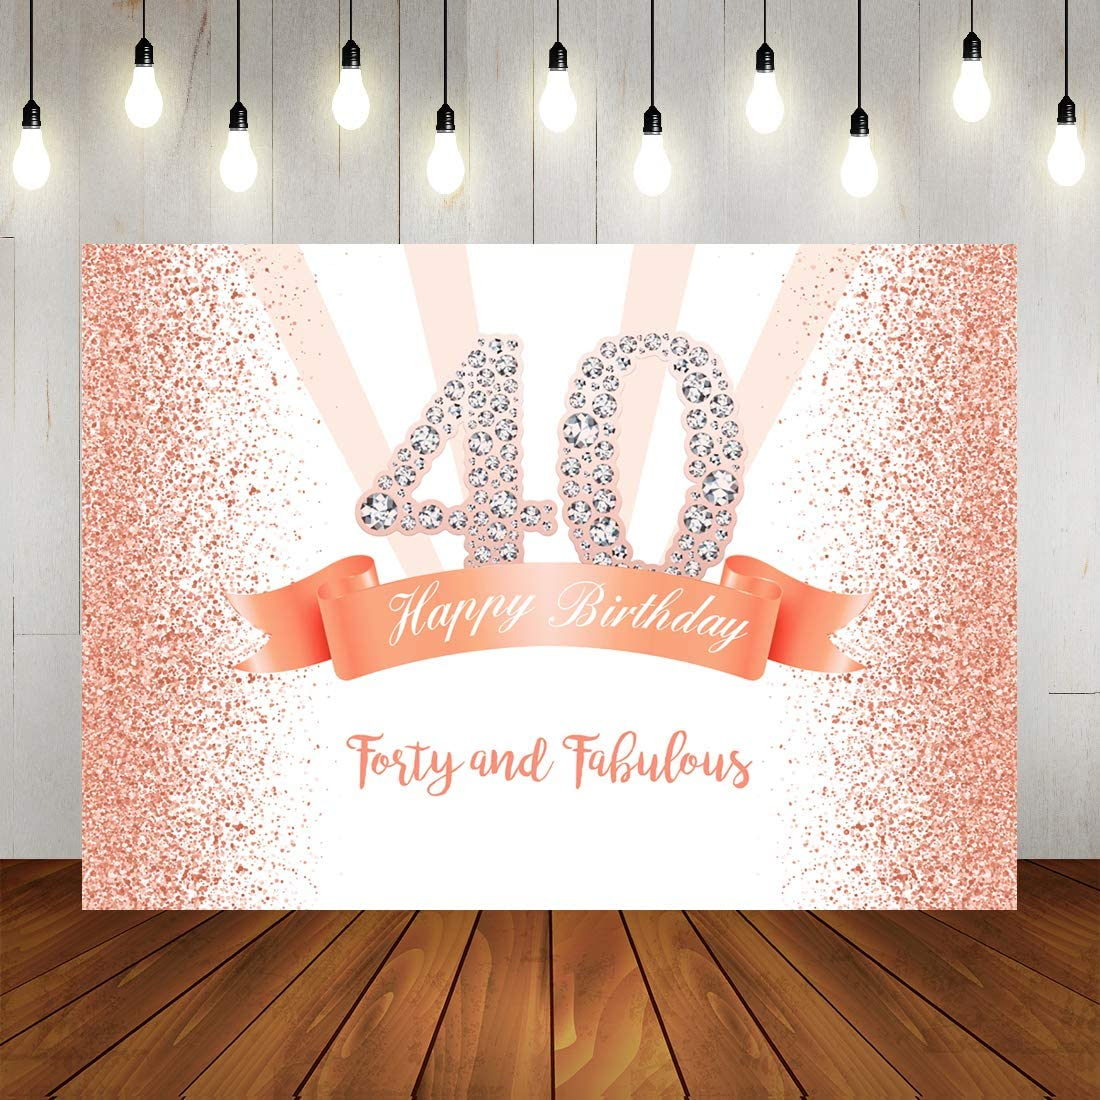 10x8ft Vinyl Fabulous 40th Birthday Photography Background Golden Glitter Sequins Edge Birthday Party Backdrop Adult Middle-Aged Birthday Party Banner Family Gathering Celebration